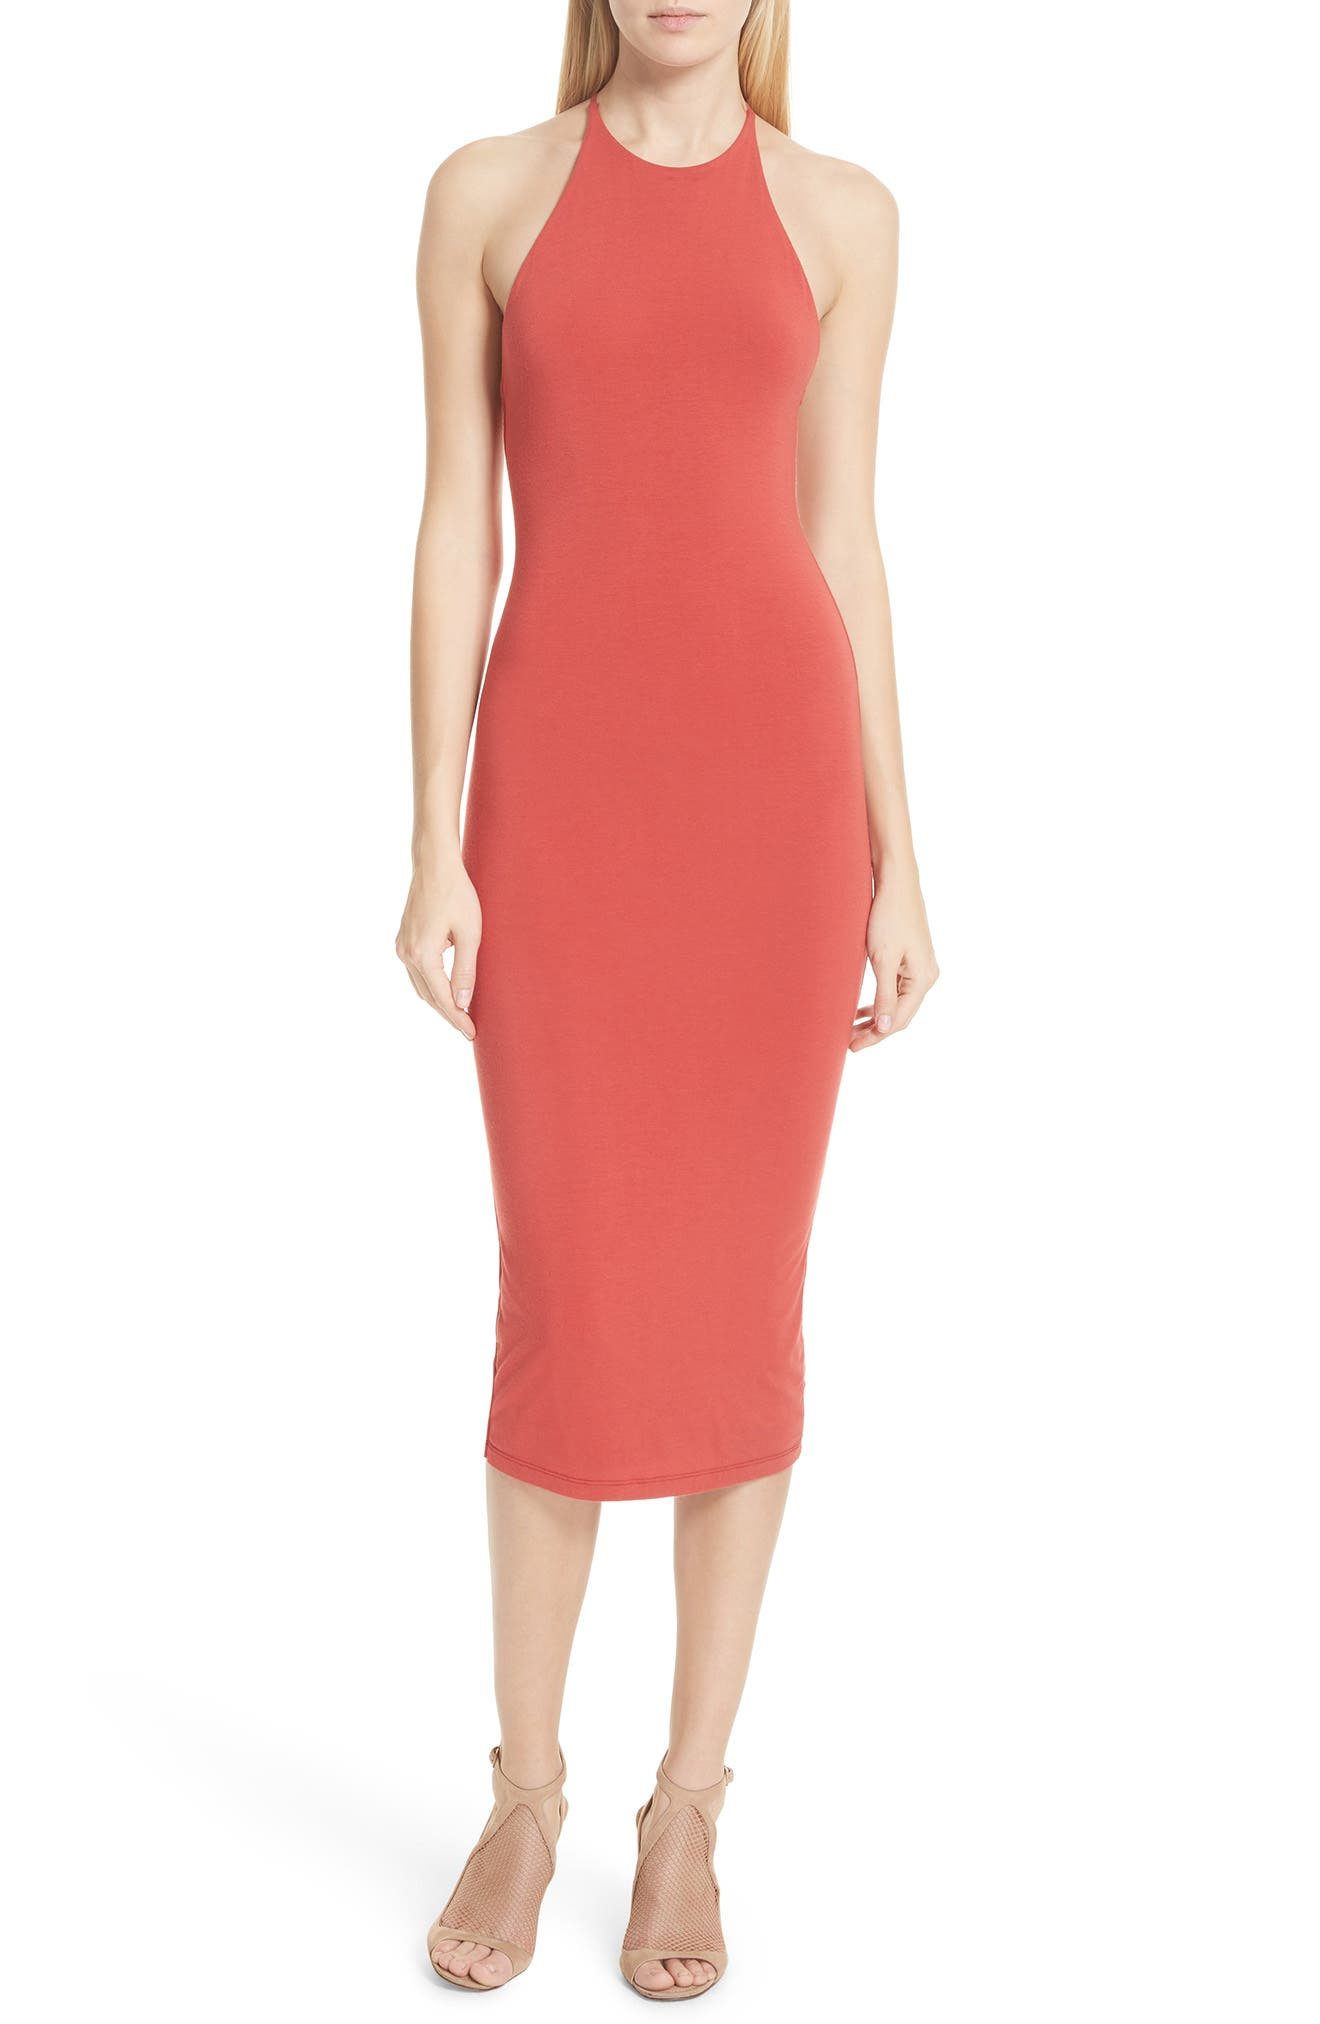 T by Alexander Wang T-Back Body-Con Dress